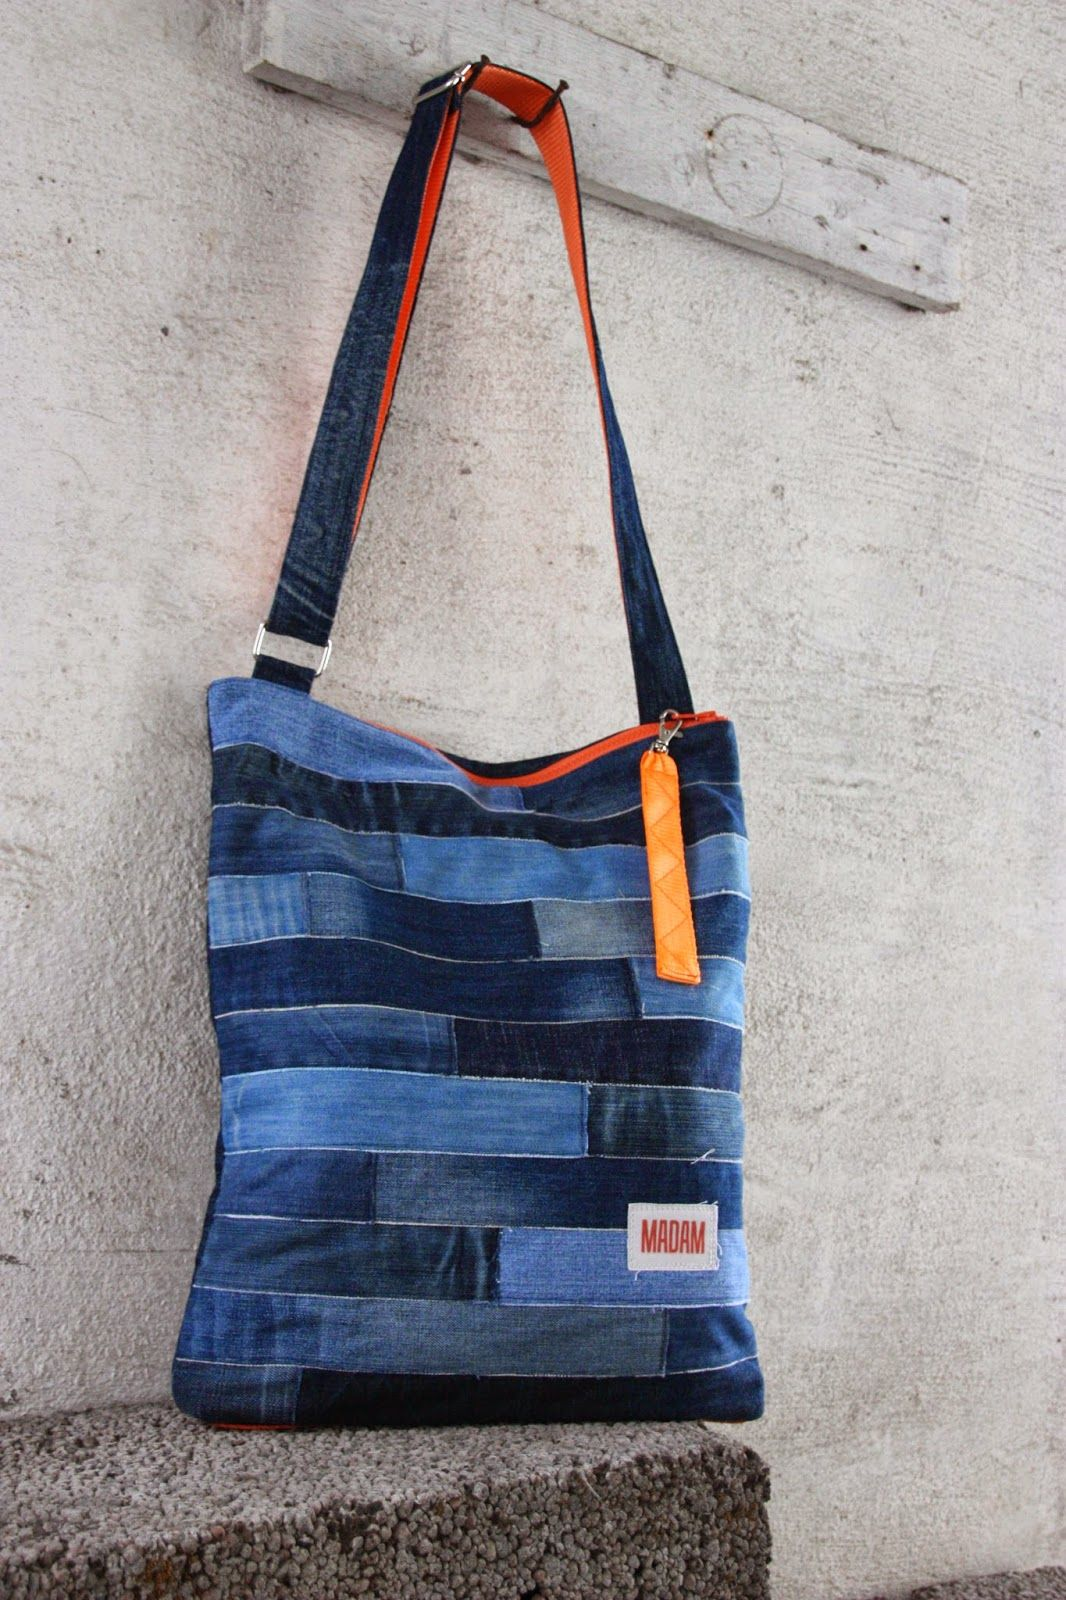 bag made of recycled jeans taschen aus denim pinterest jeans tasche denim tasche and. Black Bedroom Furniture Sets. Home Design Ideas